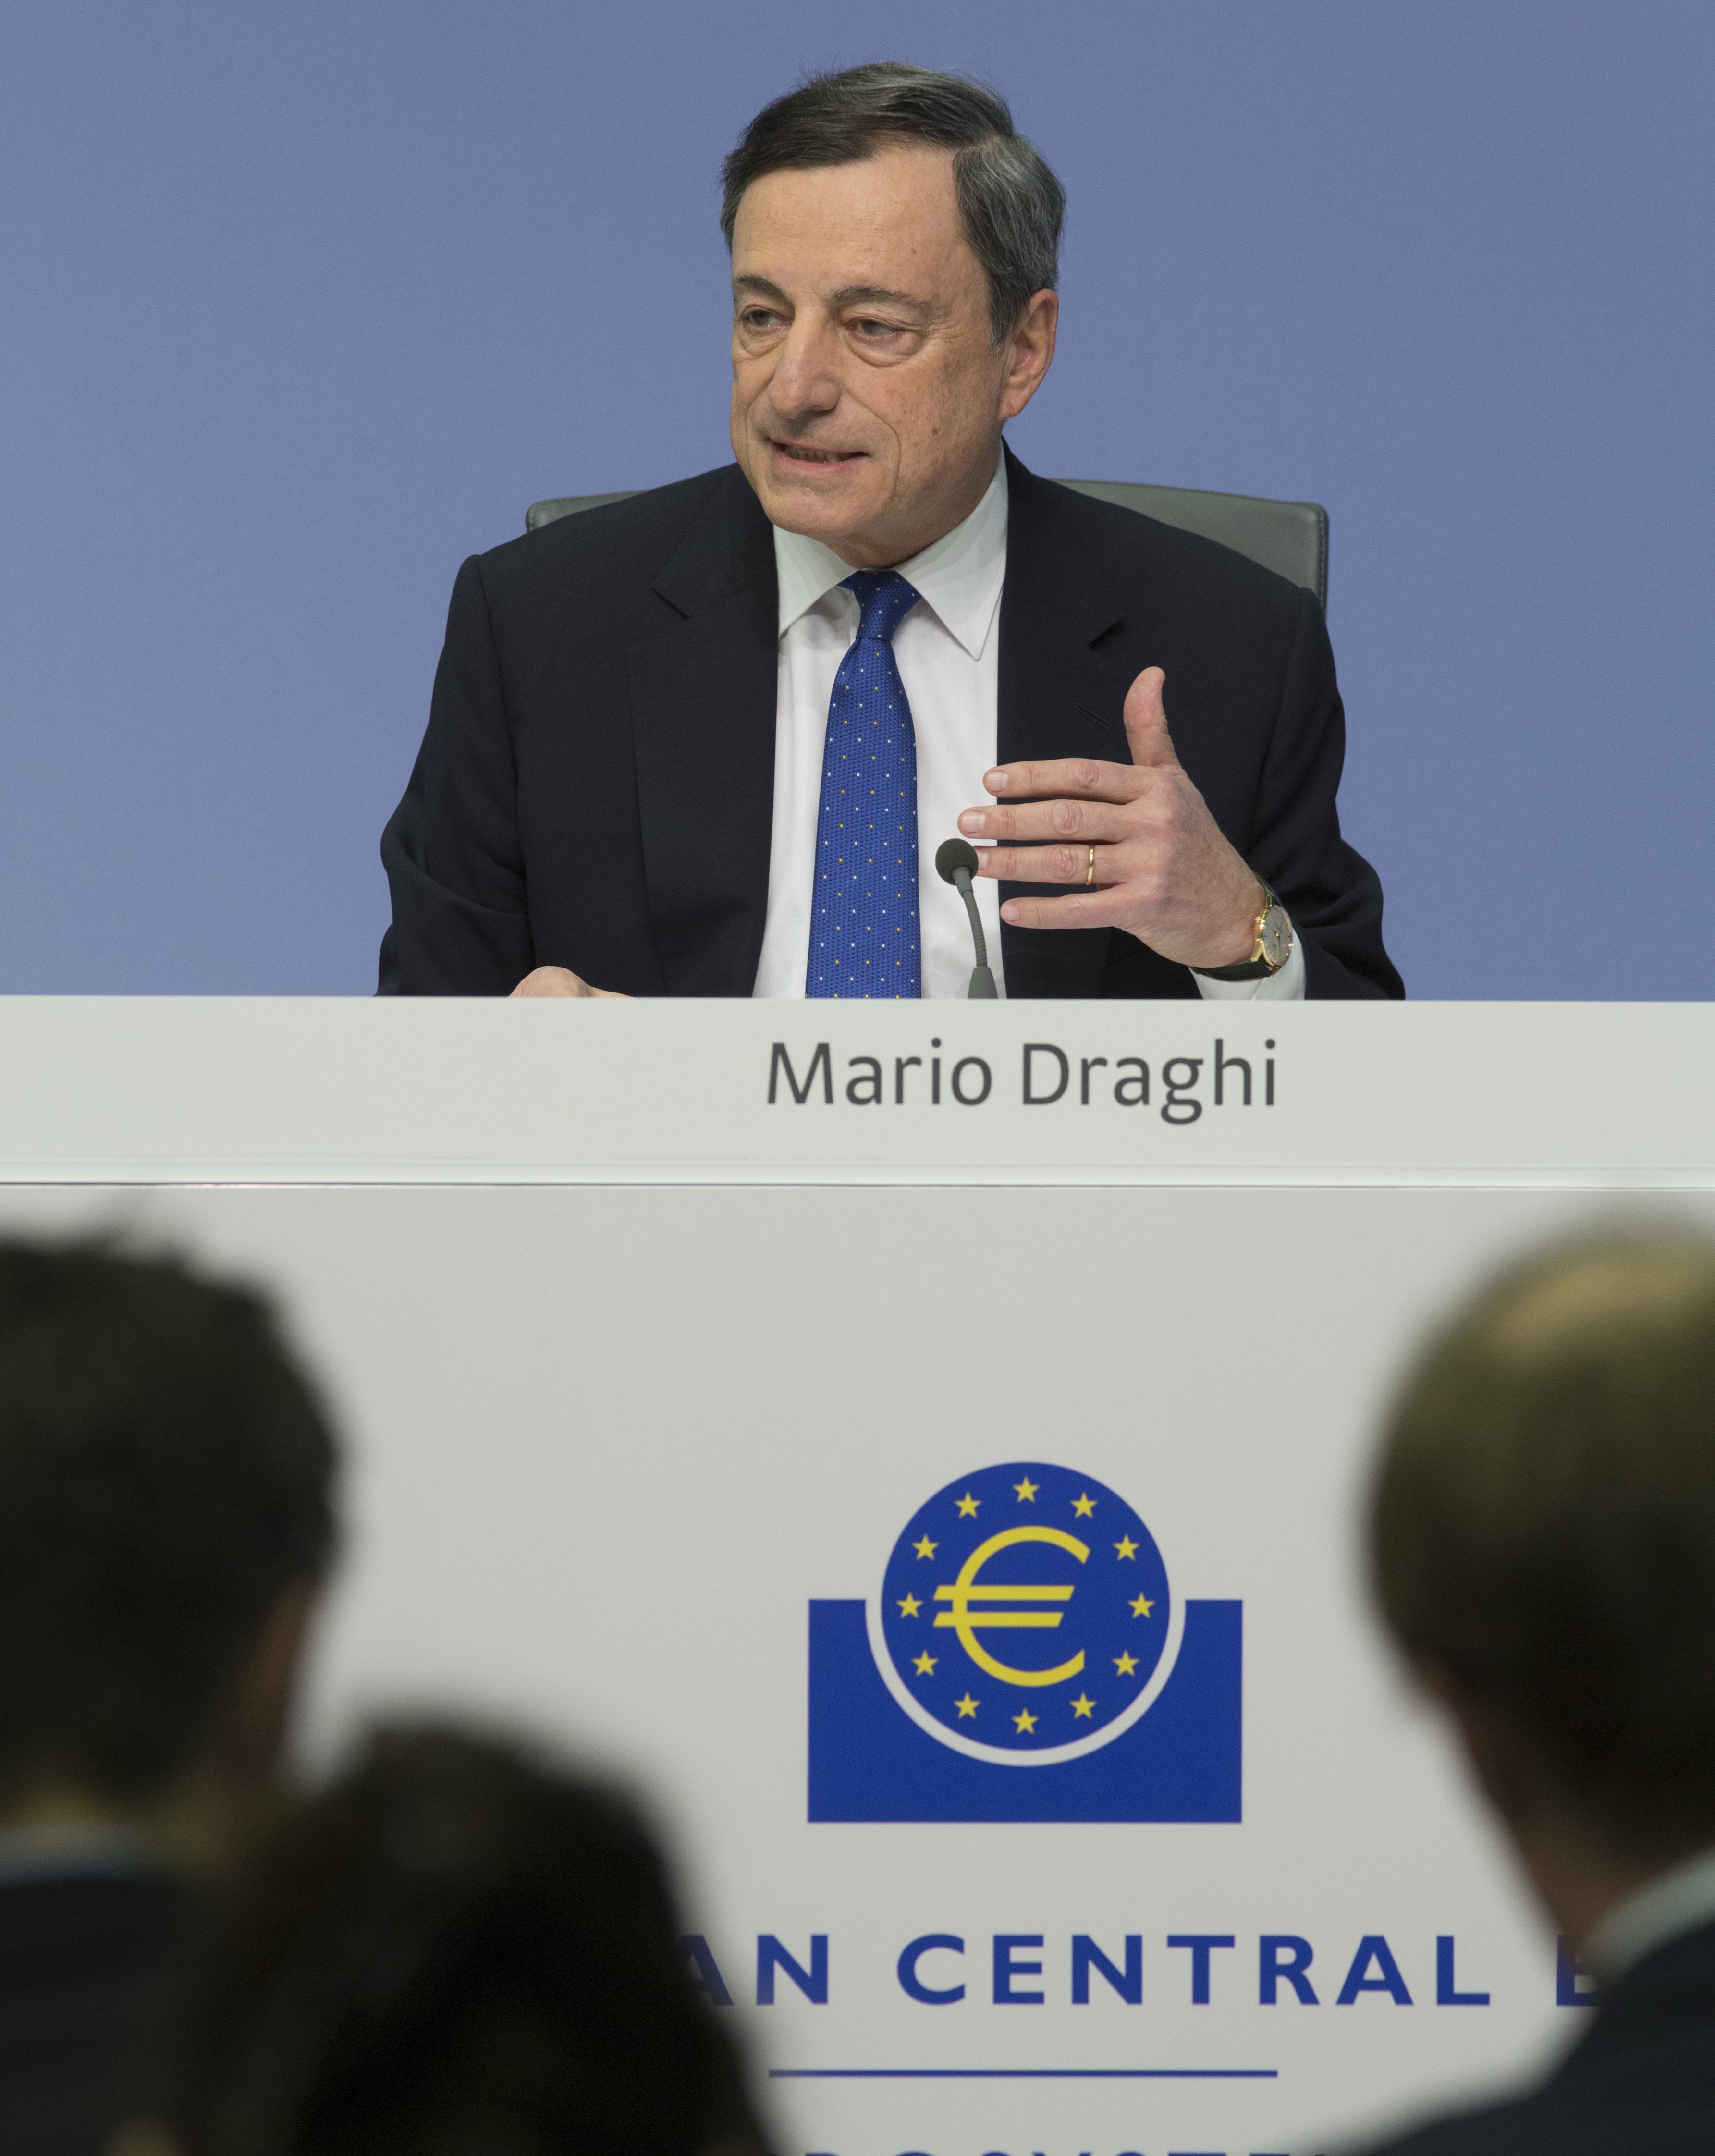 Press conference of the European Central Bank (ECB) in Frankfurt. Mario Draghi, President of the ECB, during the press conference.